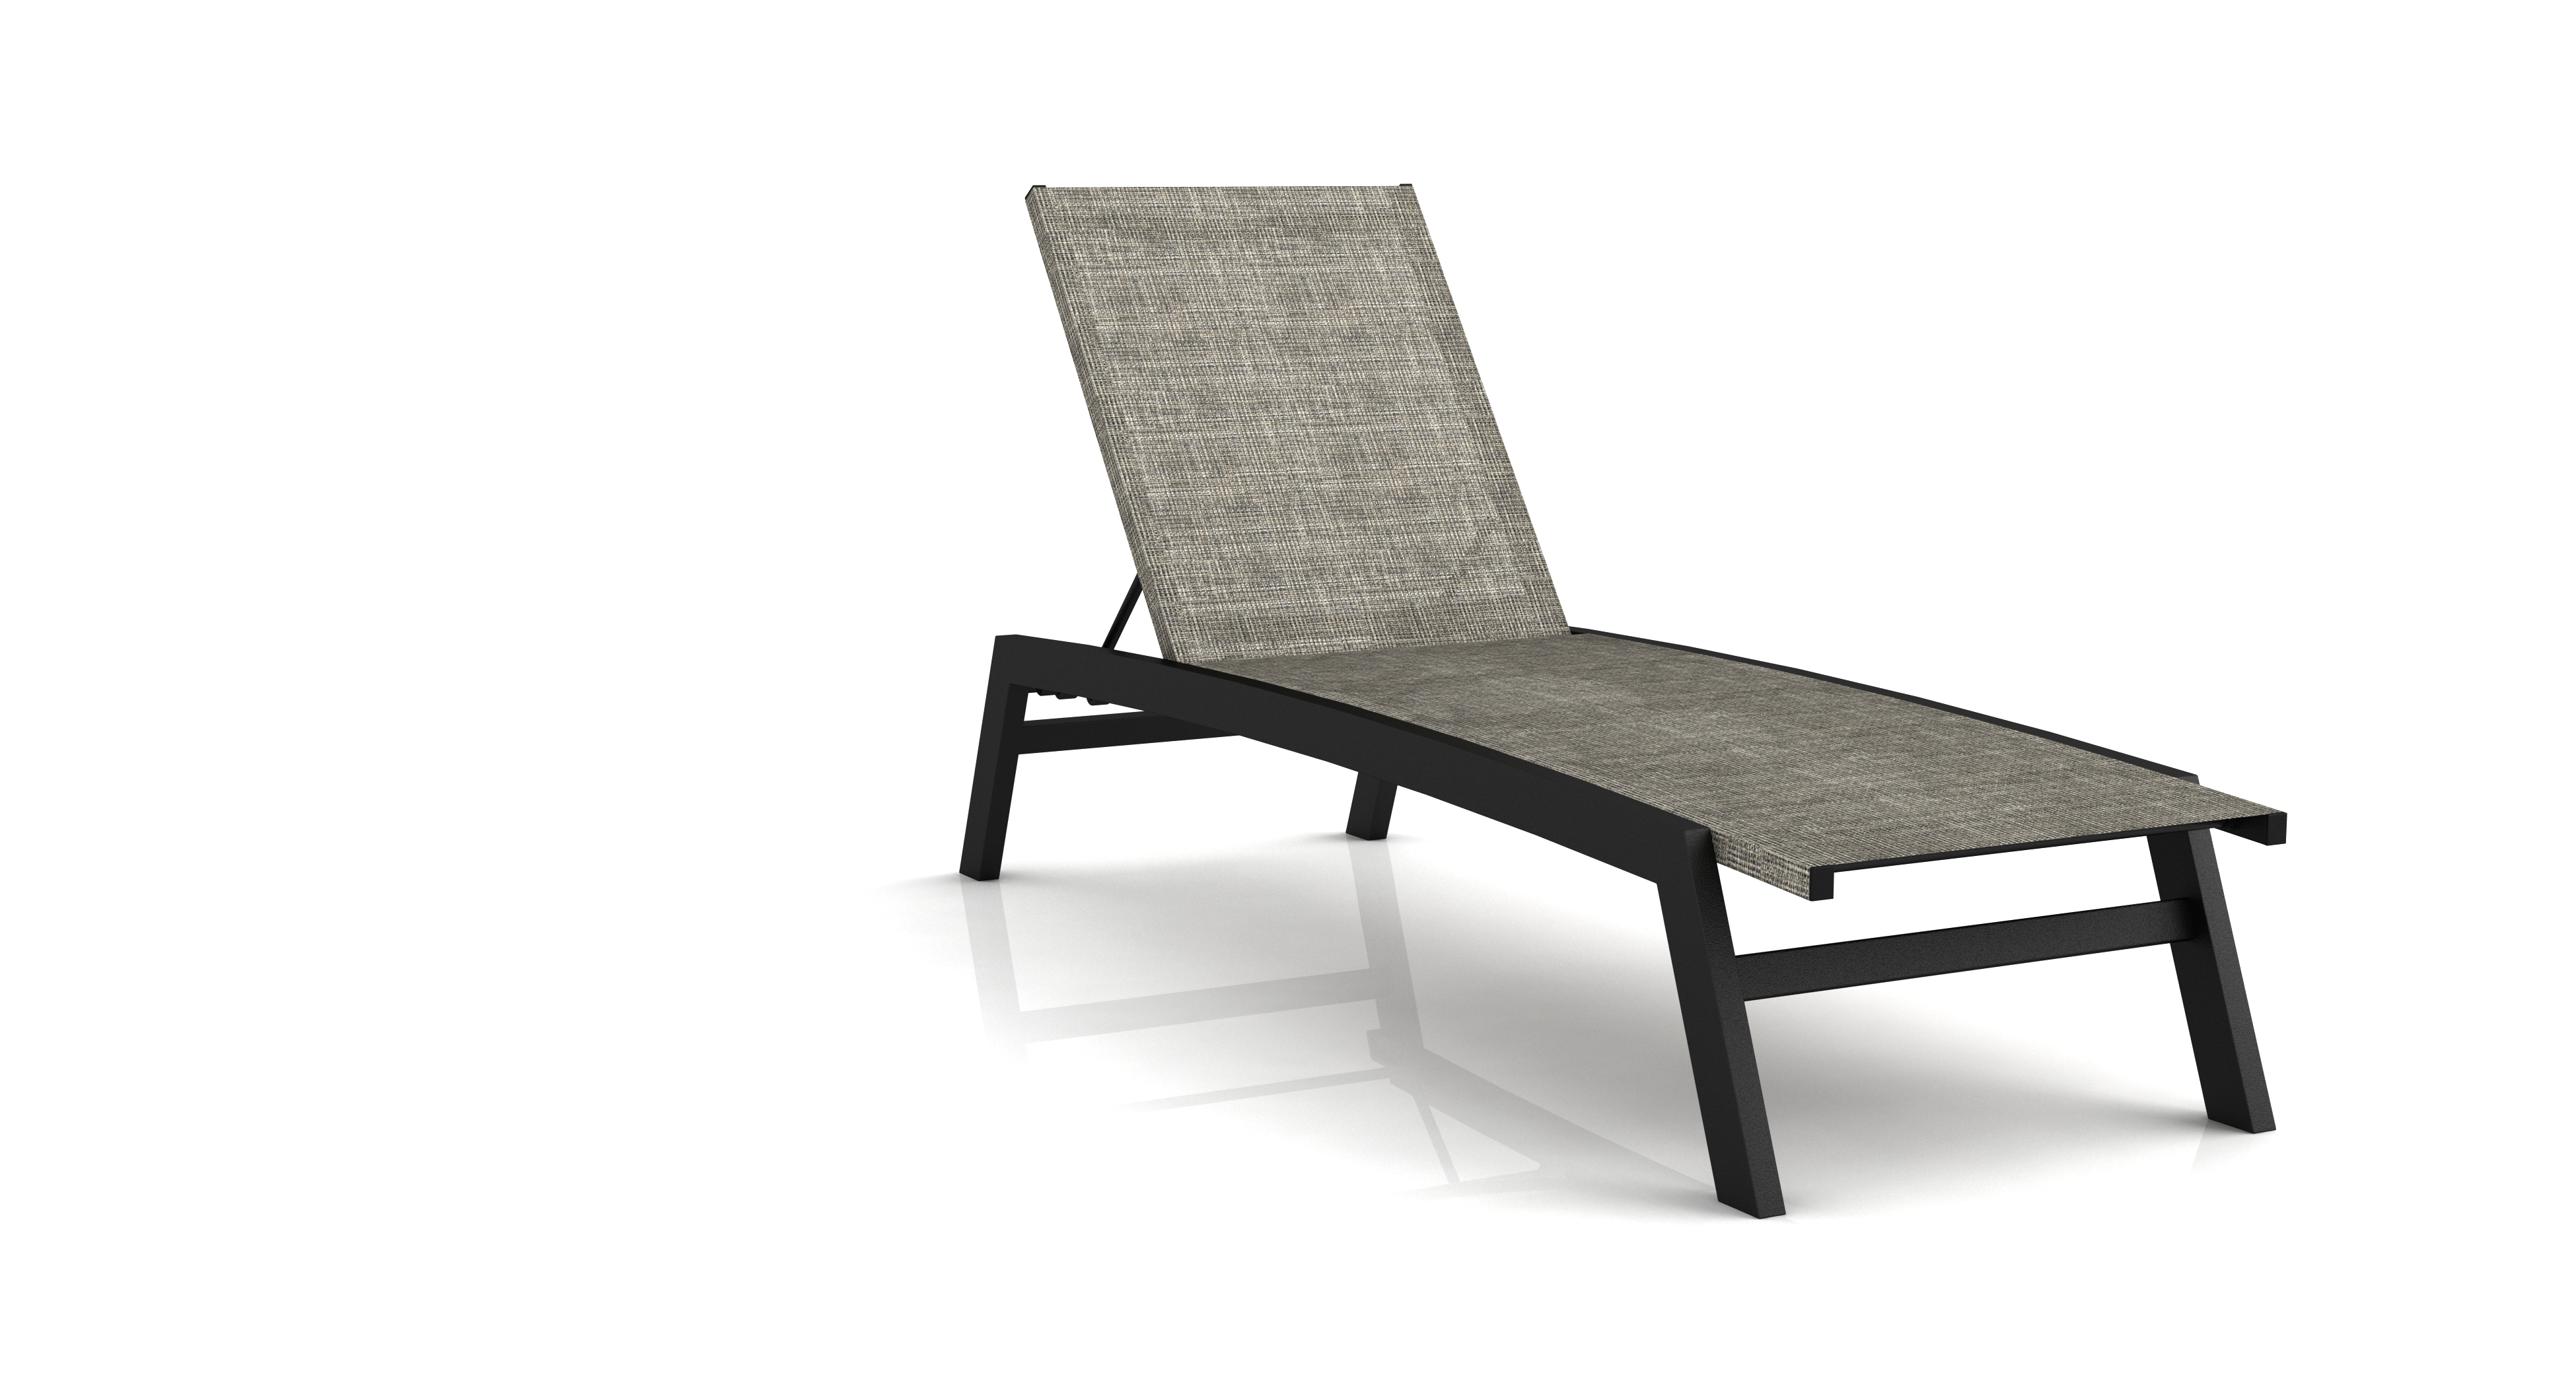 Fabulous Biscayne Aluminum Frame Chaise Lounge Chair Theyellowbook Wood Chair Design Ideas Theyellowbookinfo